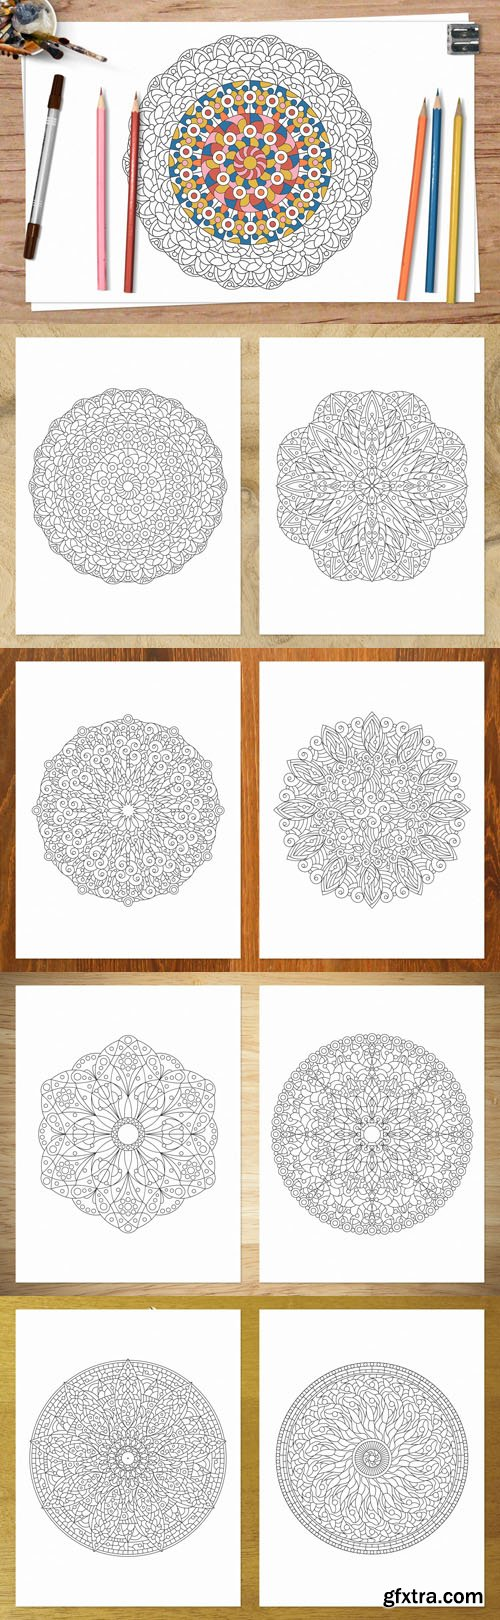 Adult Coloring Pages [AI/PDF]